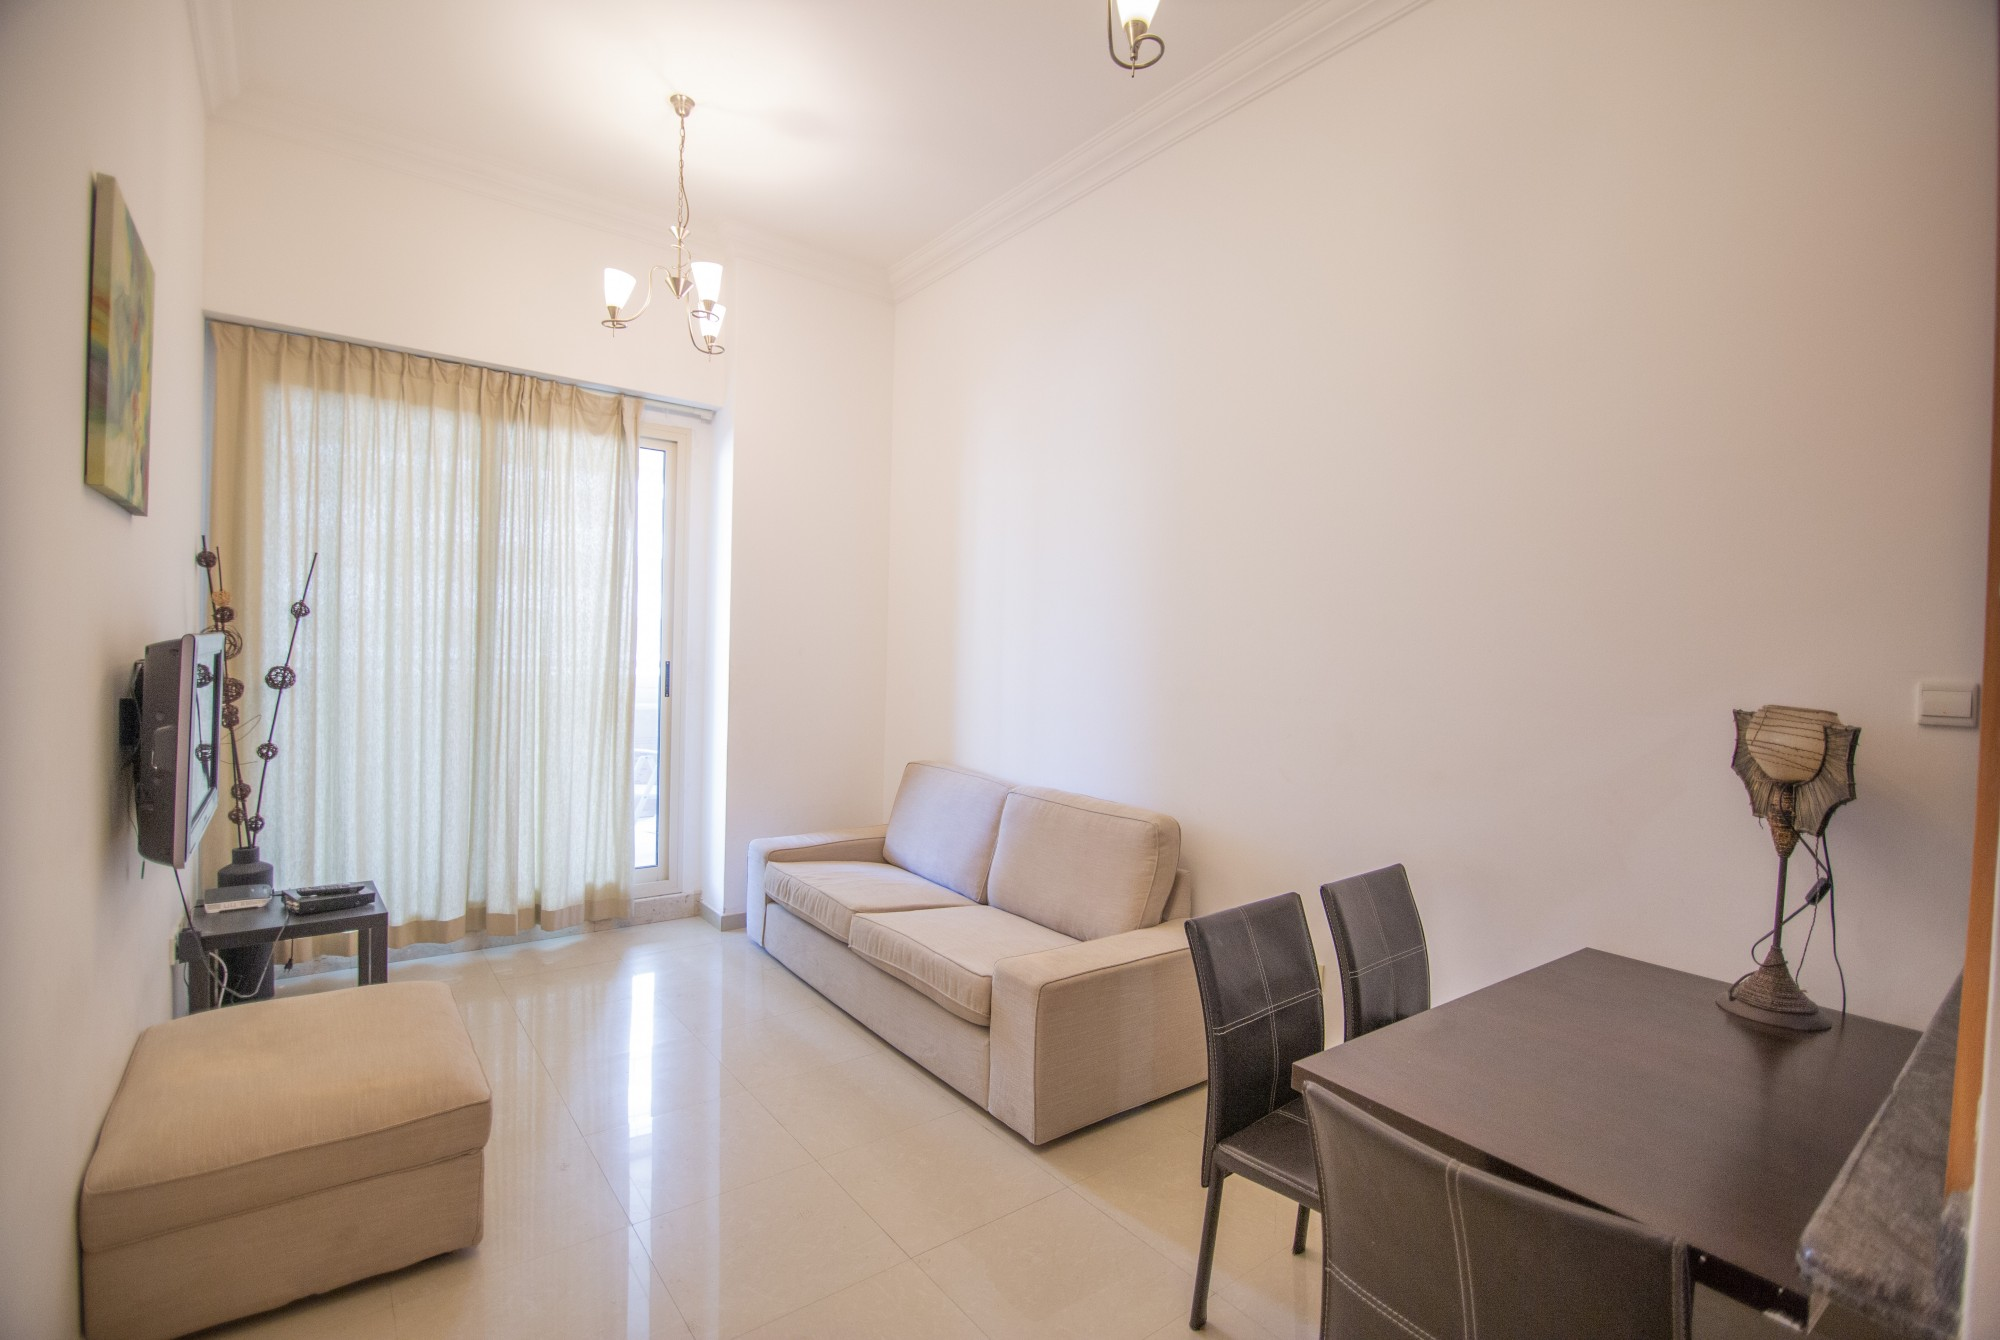 Fully Furnished|All Inclusive 1 BED/2 BATH|Dream come true!!